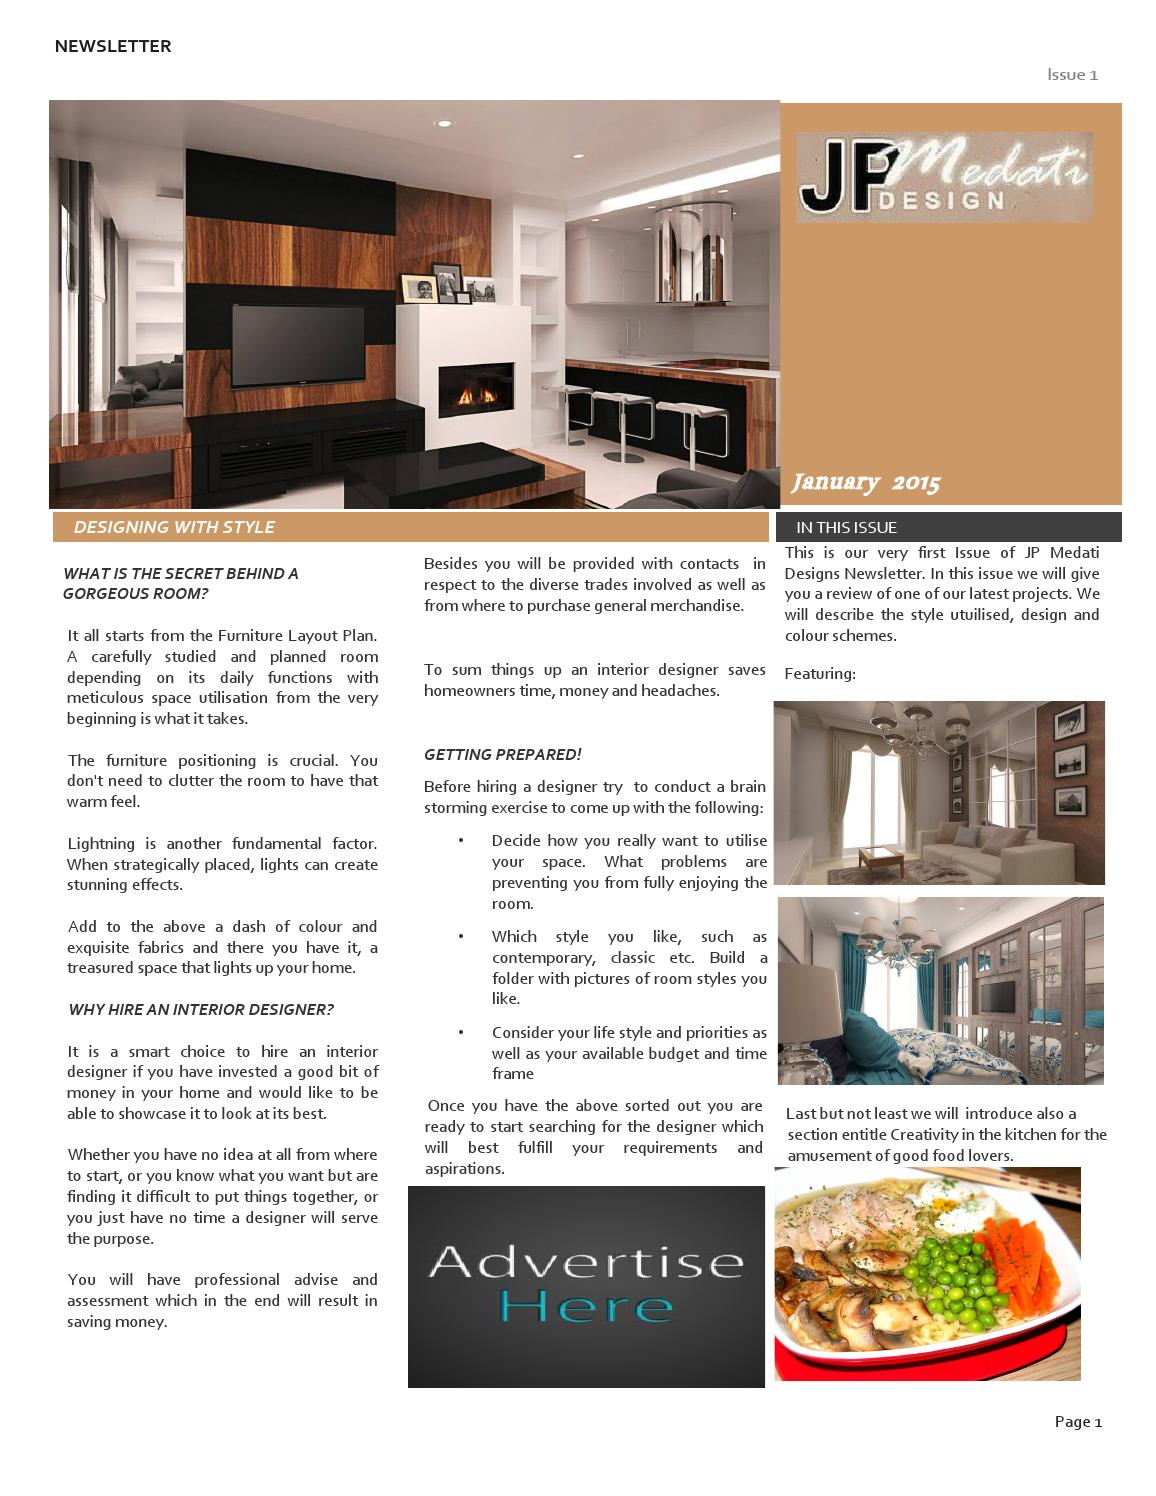 JP Medati Interior Design Newsletter Issue 1 January 2015 By Jean Paul